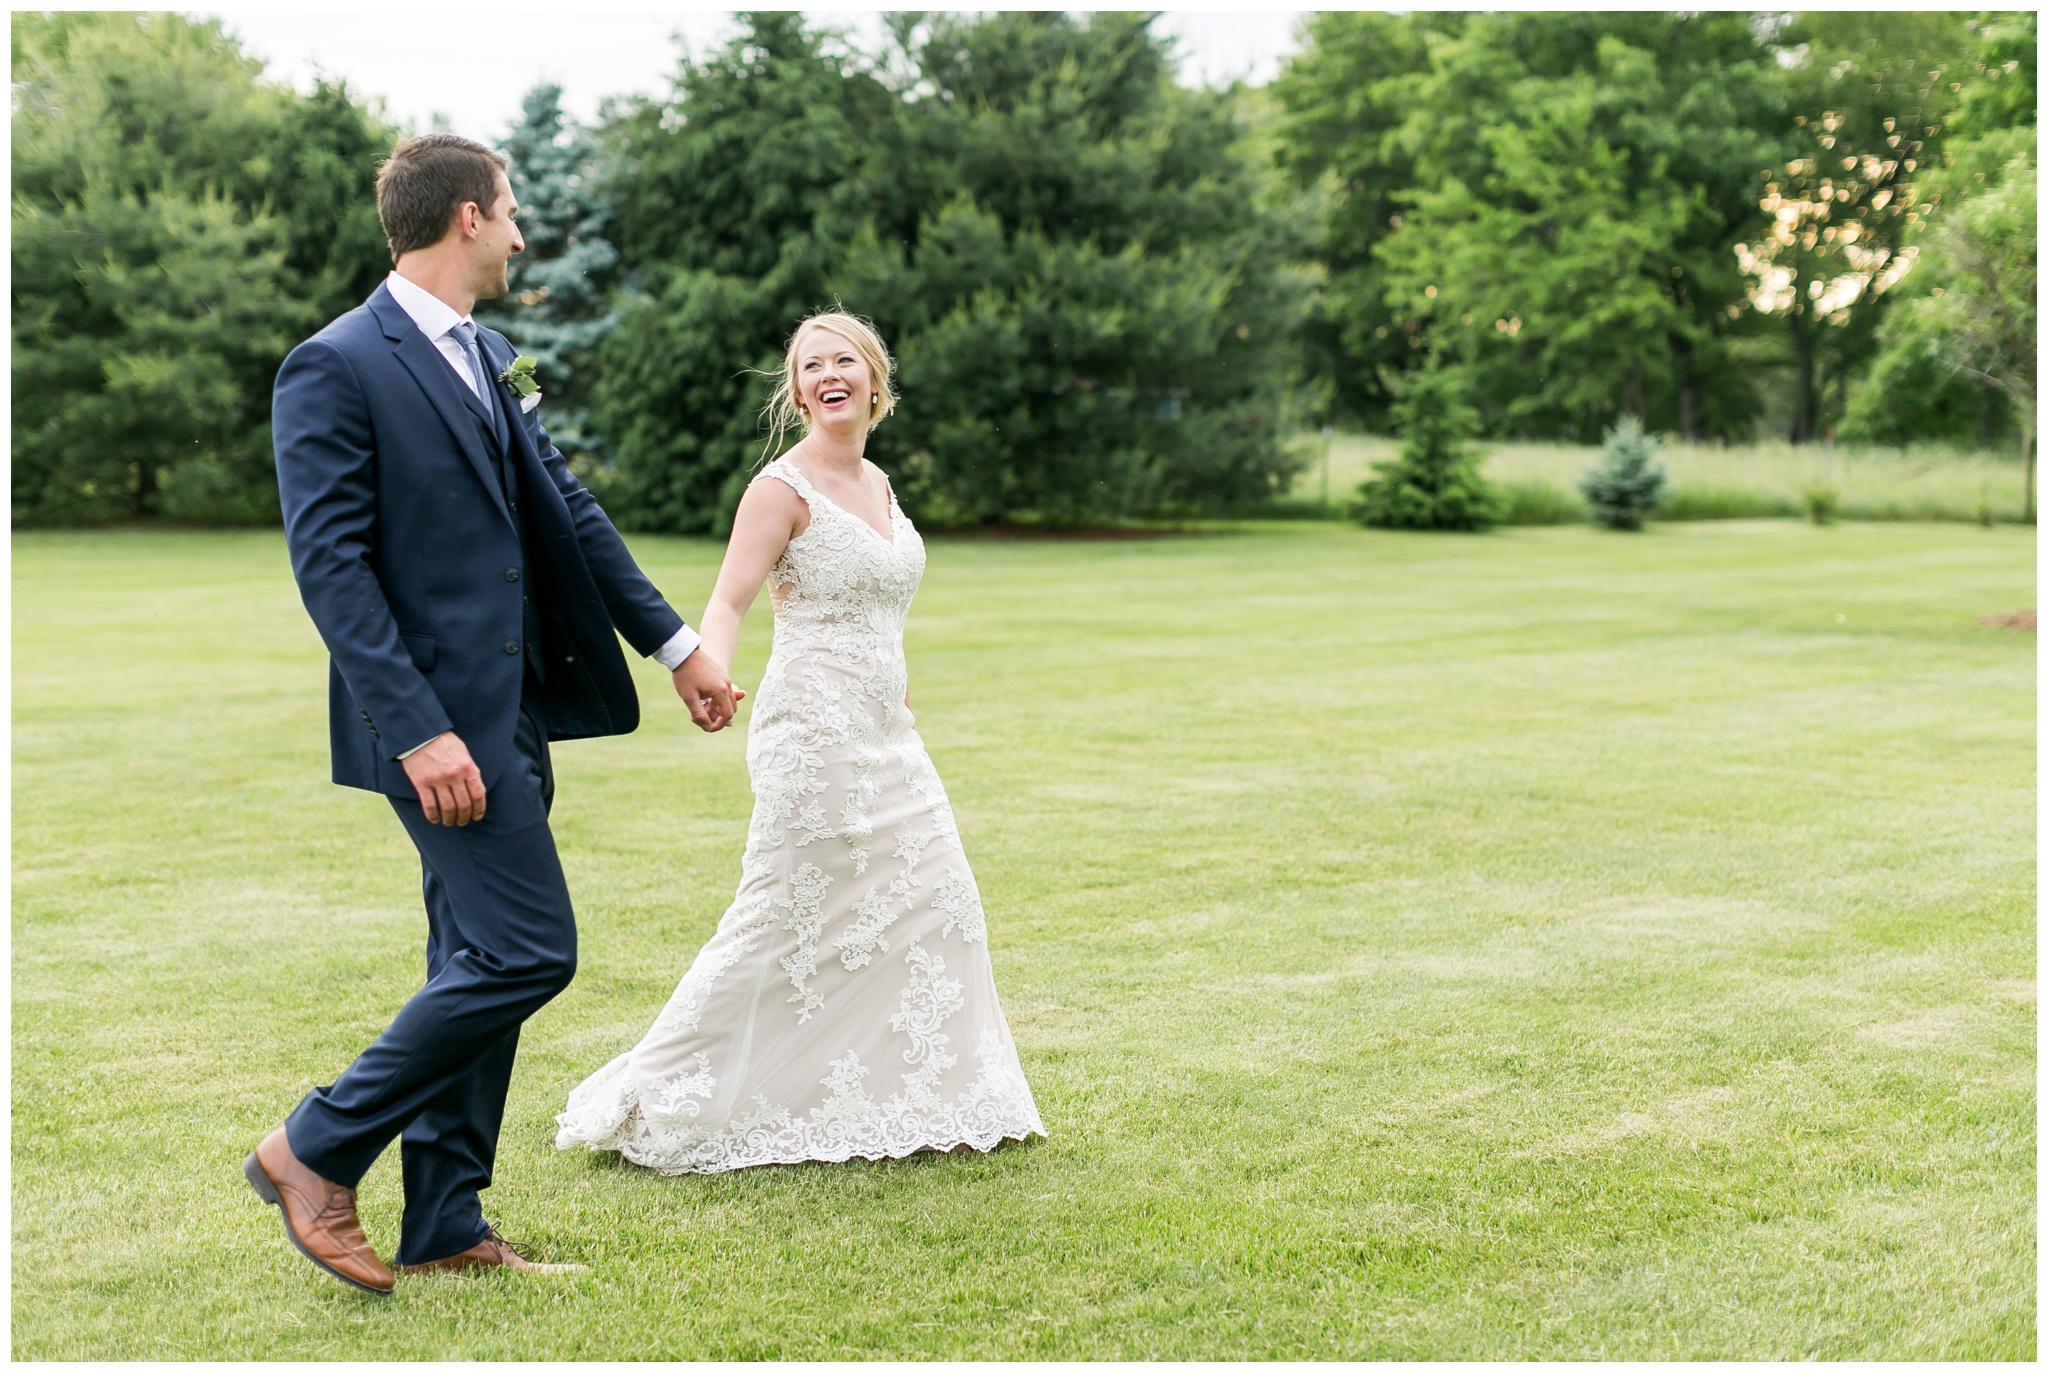 private_estate_wedding_stoughton_wisconsin_wedding_caynay_photo_3890.jpg